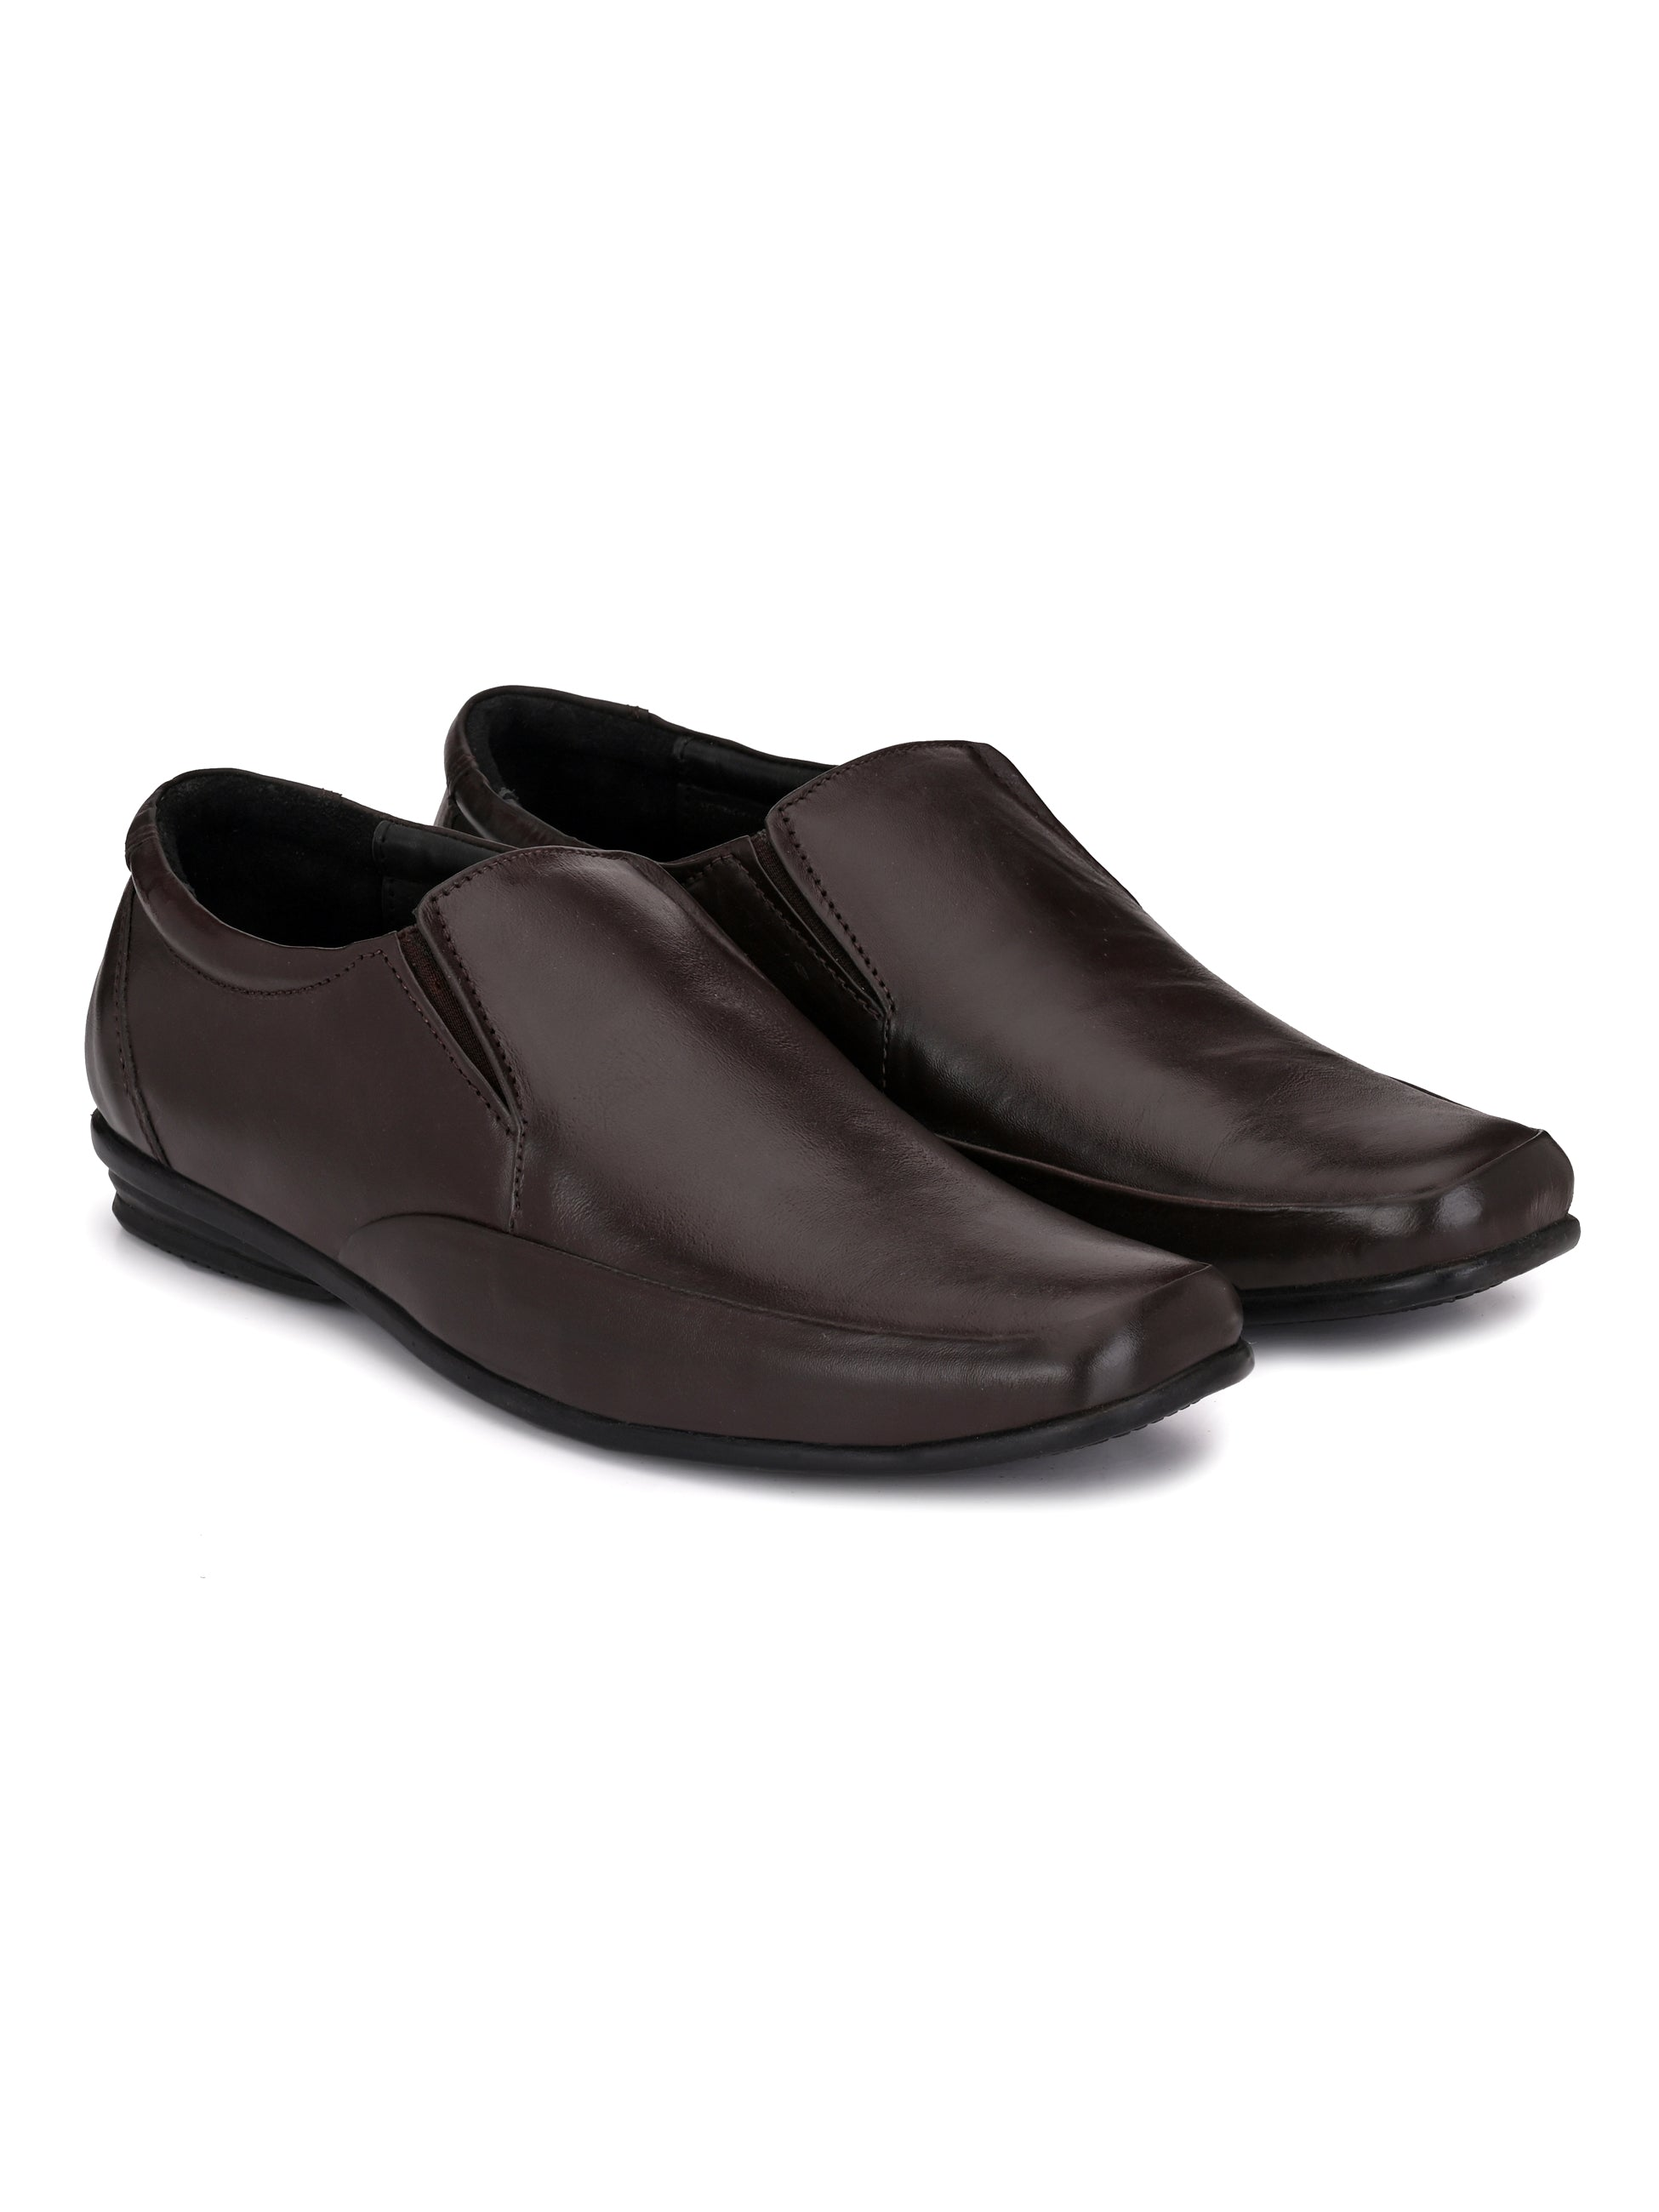 Brown Leather Shoes - shoegaro